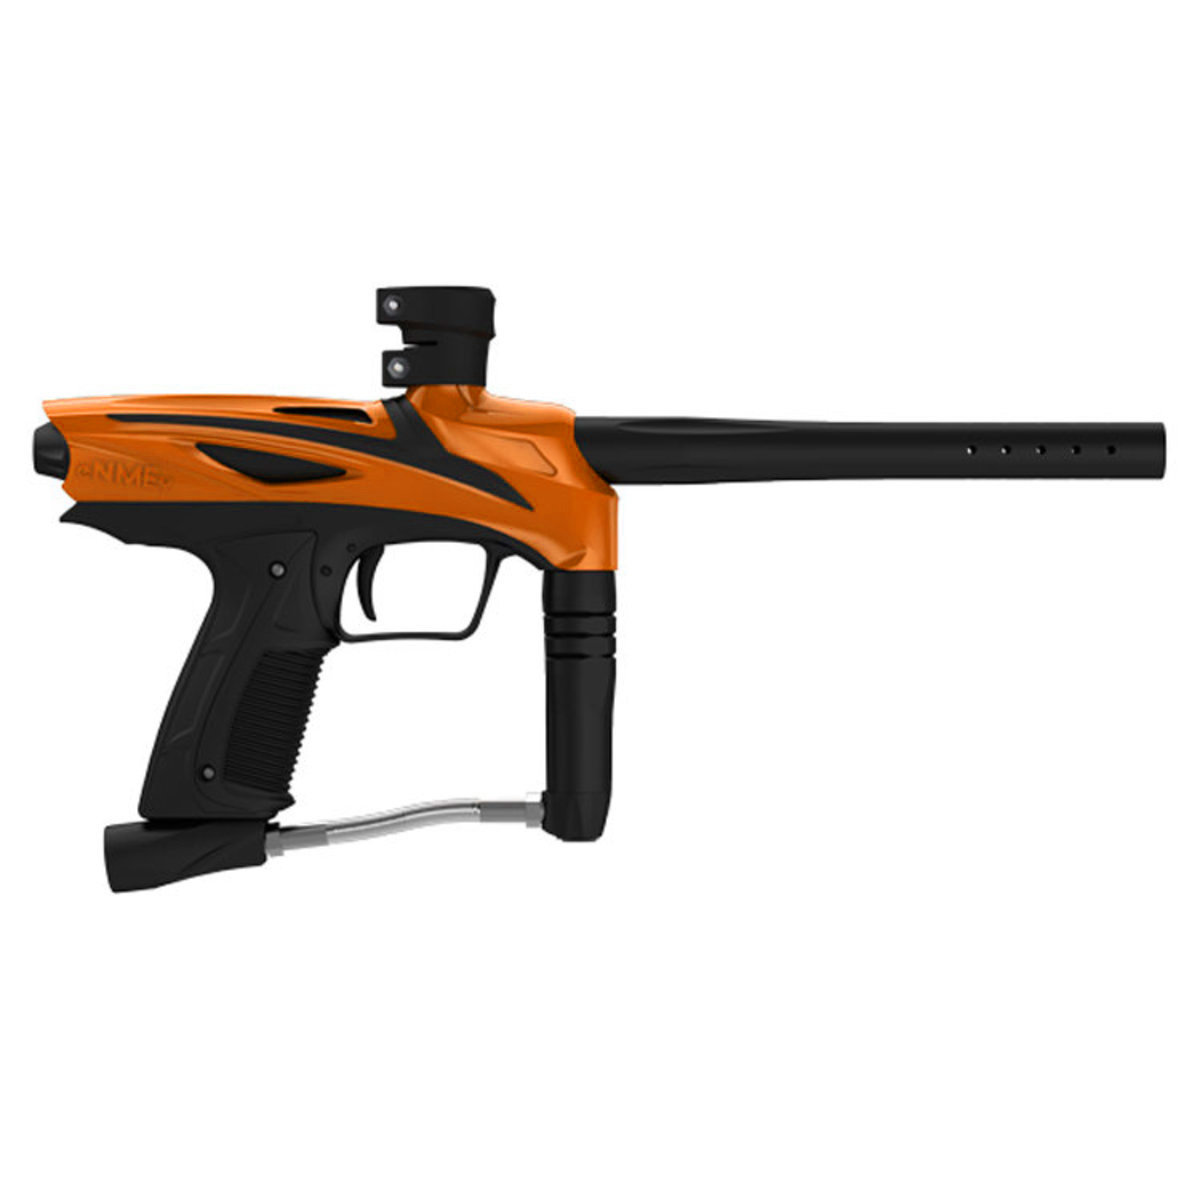 View larger image of GoG eNMEy .50 Caliber Paintball Gun